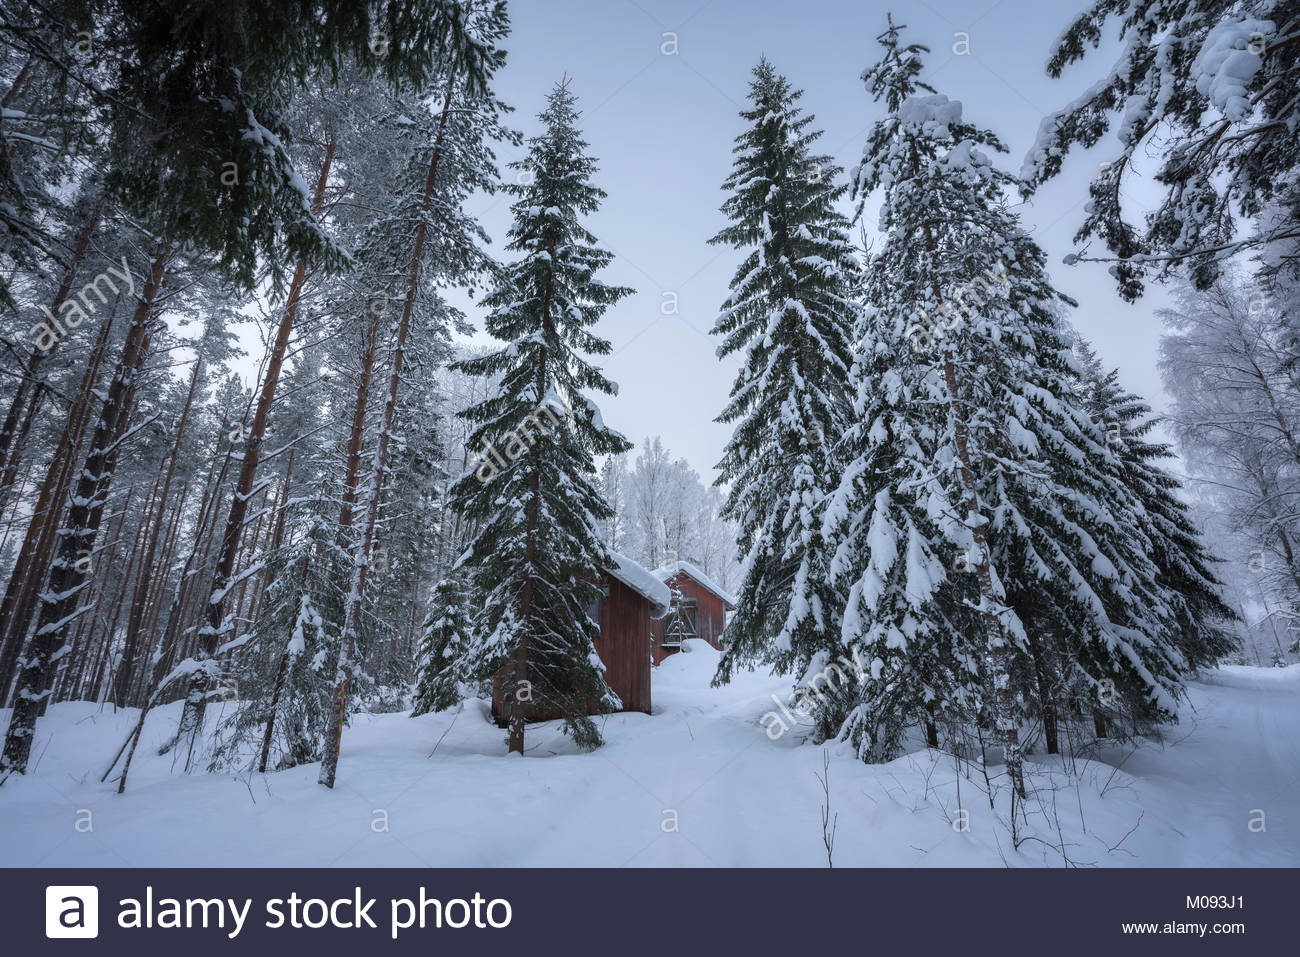 old barrack in  an winter forest landscape - Stock Image